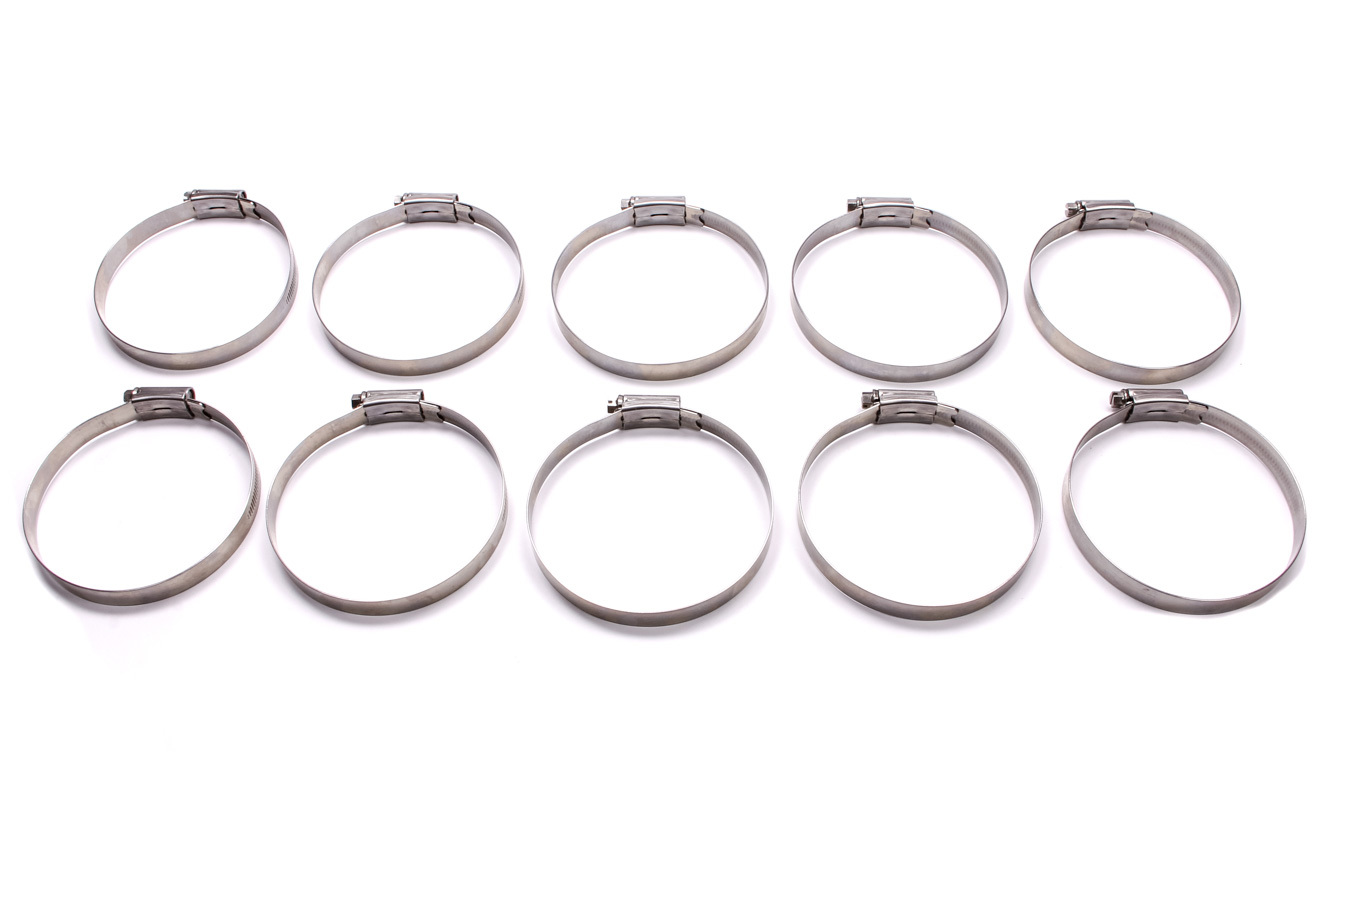 100mm-3.937in Hose Clamp 10pk